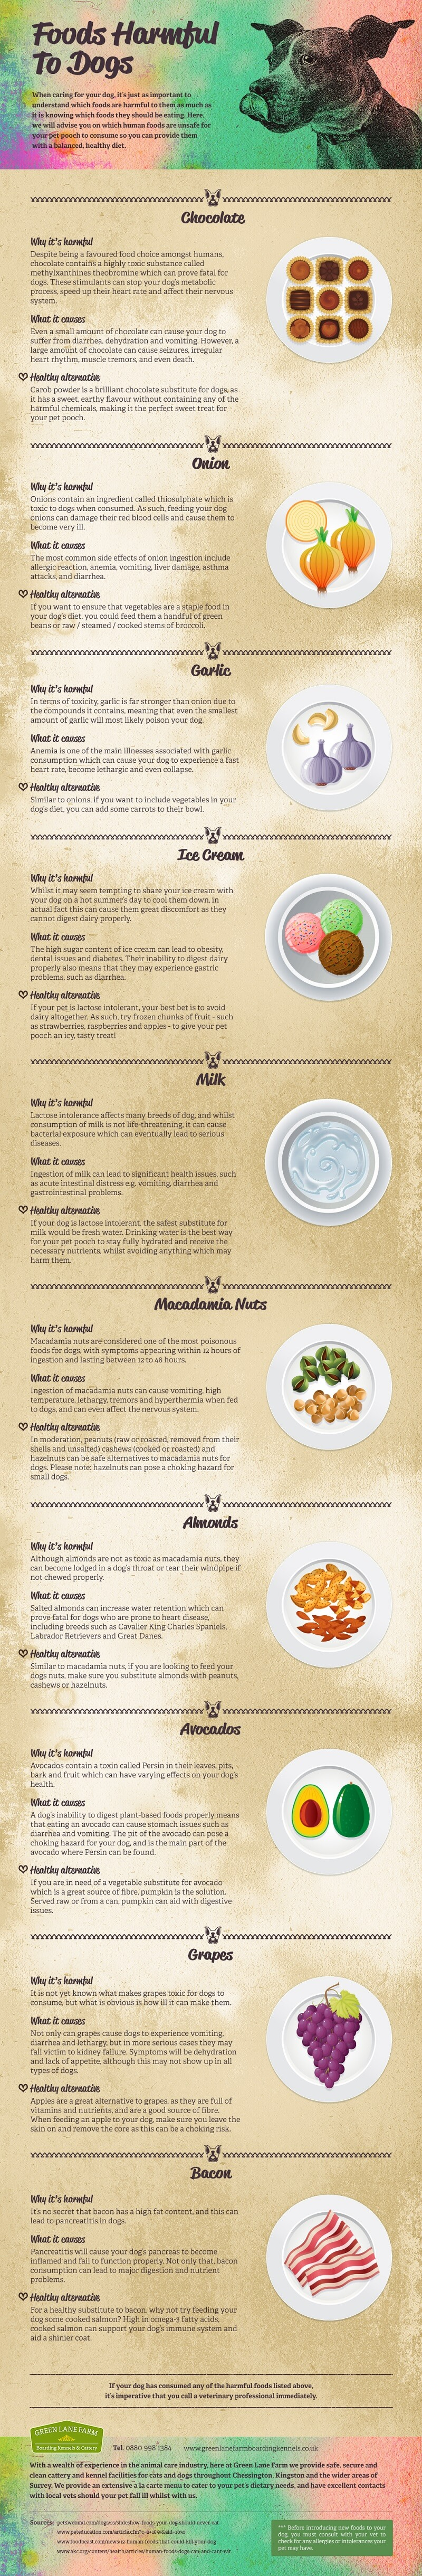 Toxic Foods For Dogs